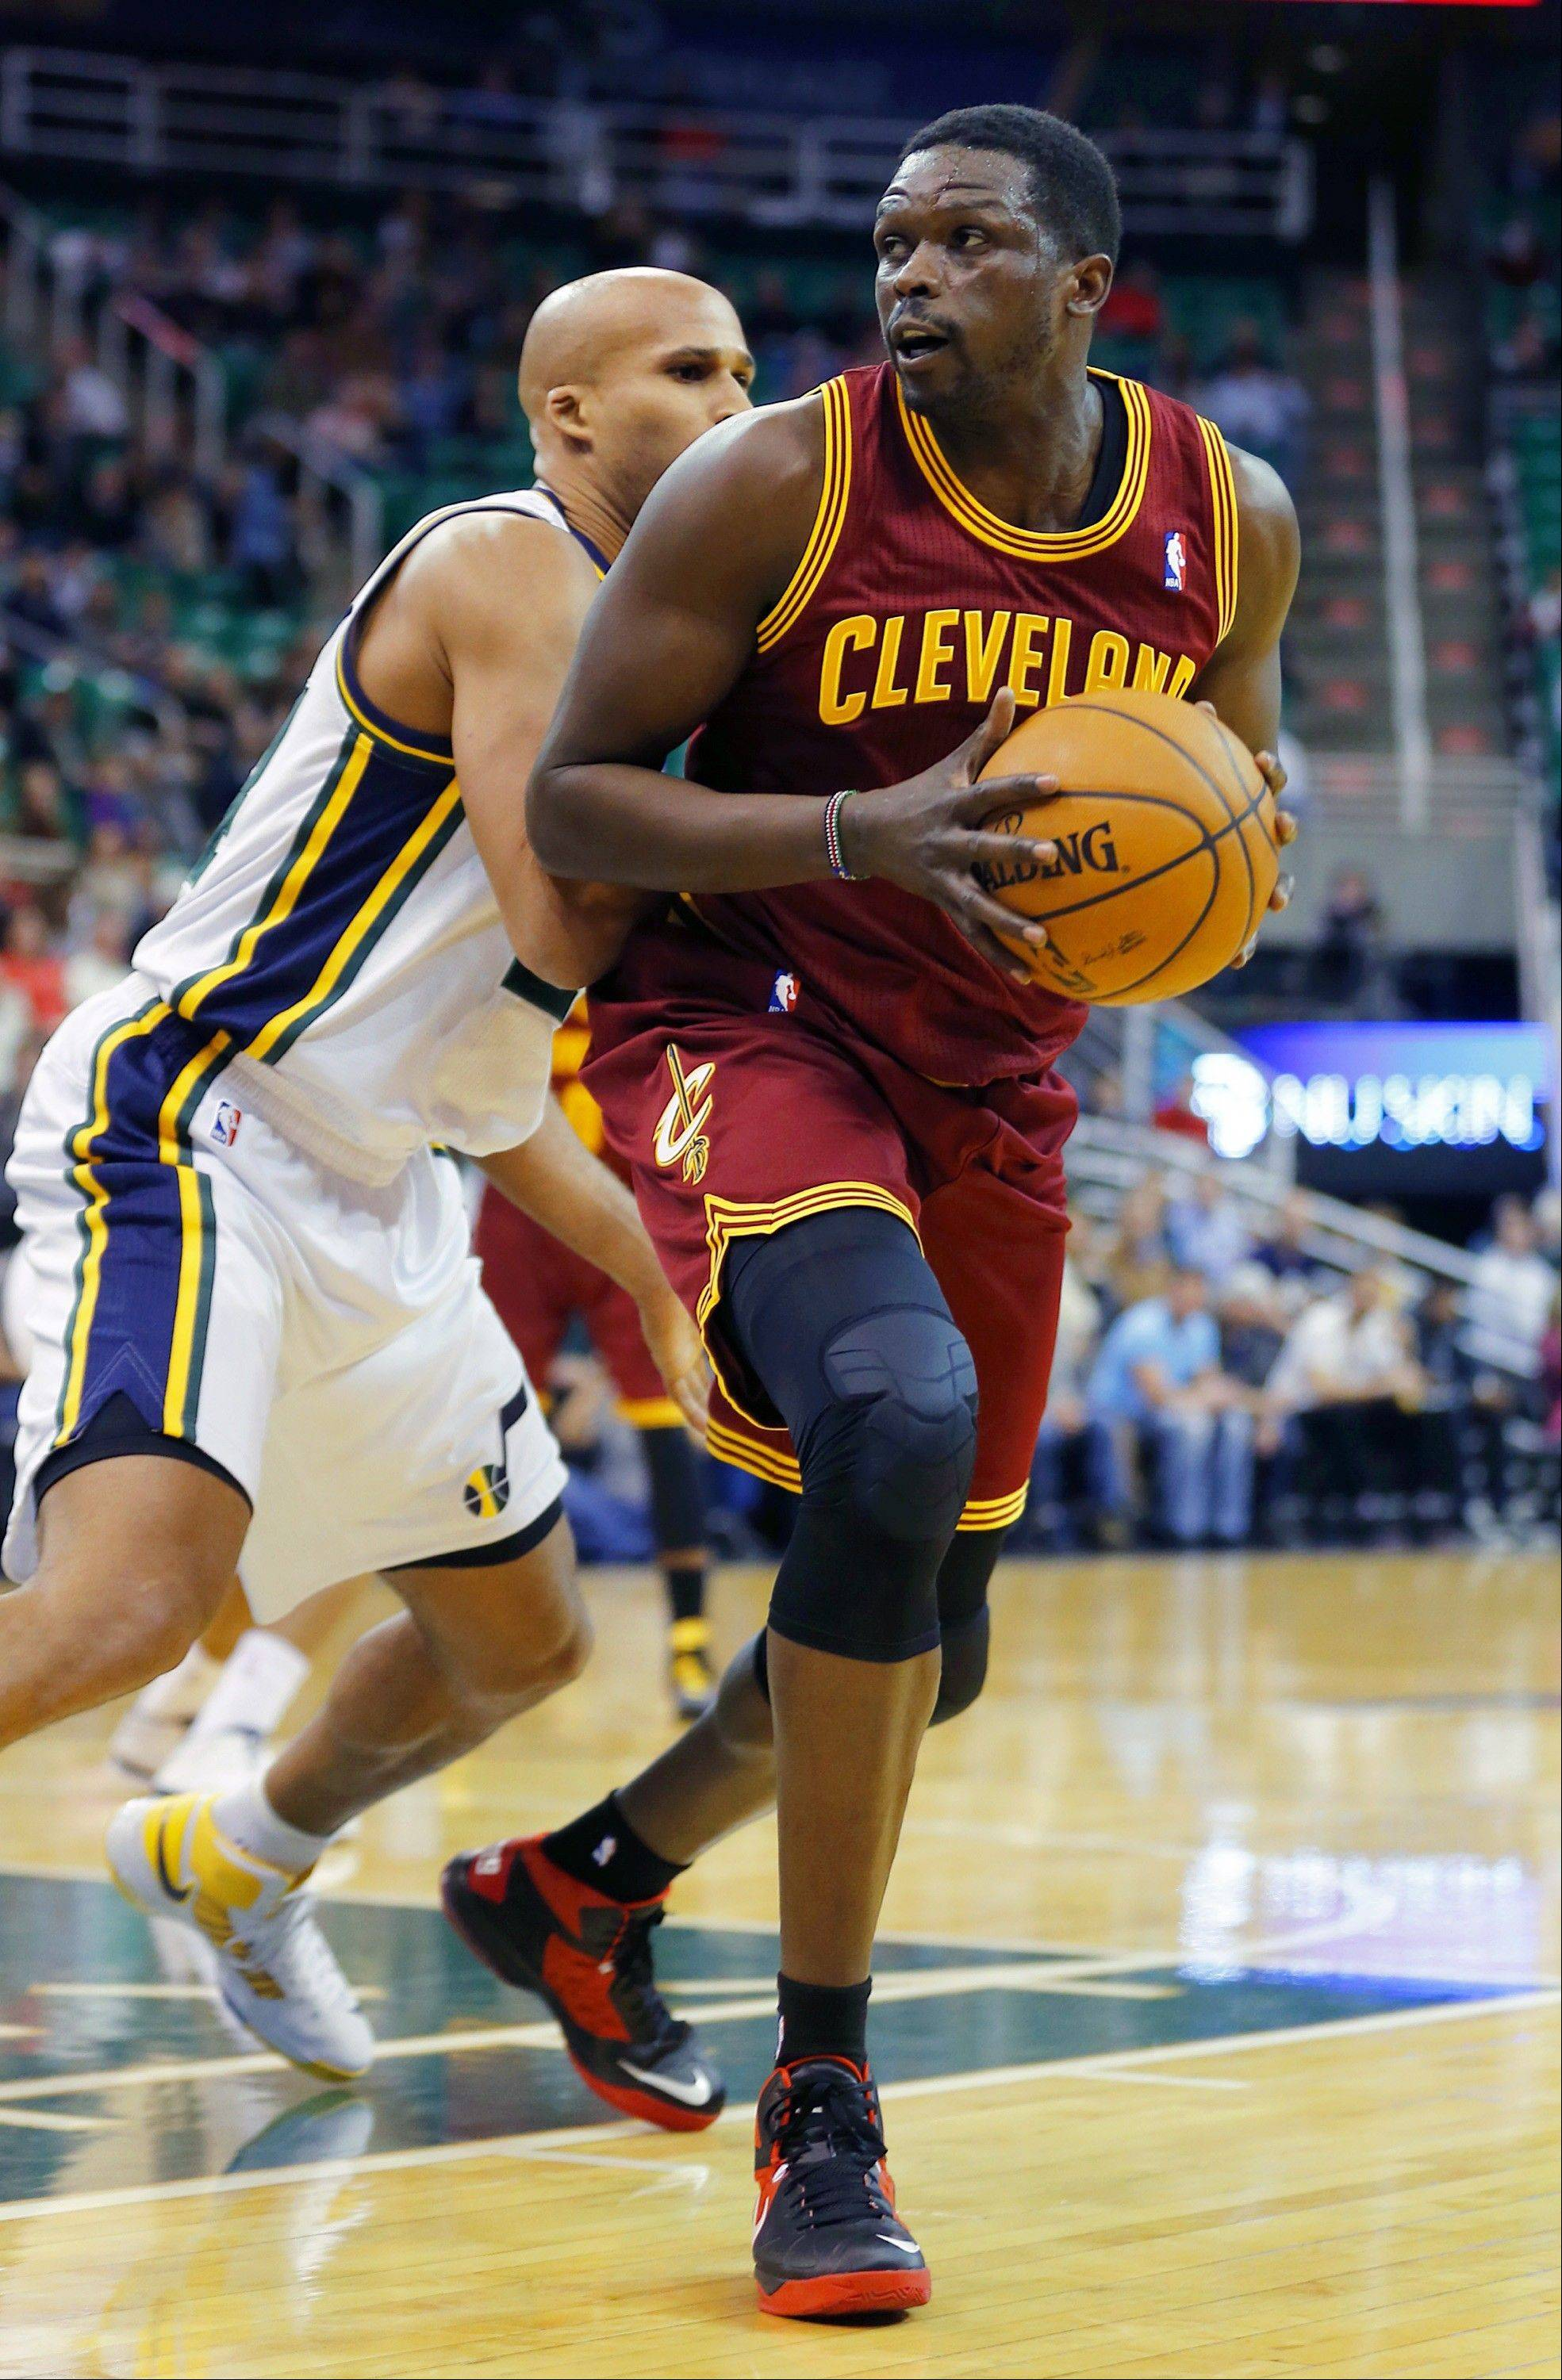 Cleveland Cavalier's Luol Deng, right, looks to shoot over Utah Jazz's Richard Jefferson during an NBA basketball game in Salt Lake City, Friday, Jan. 10, 2014. (AP Photo/George Frey)